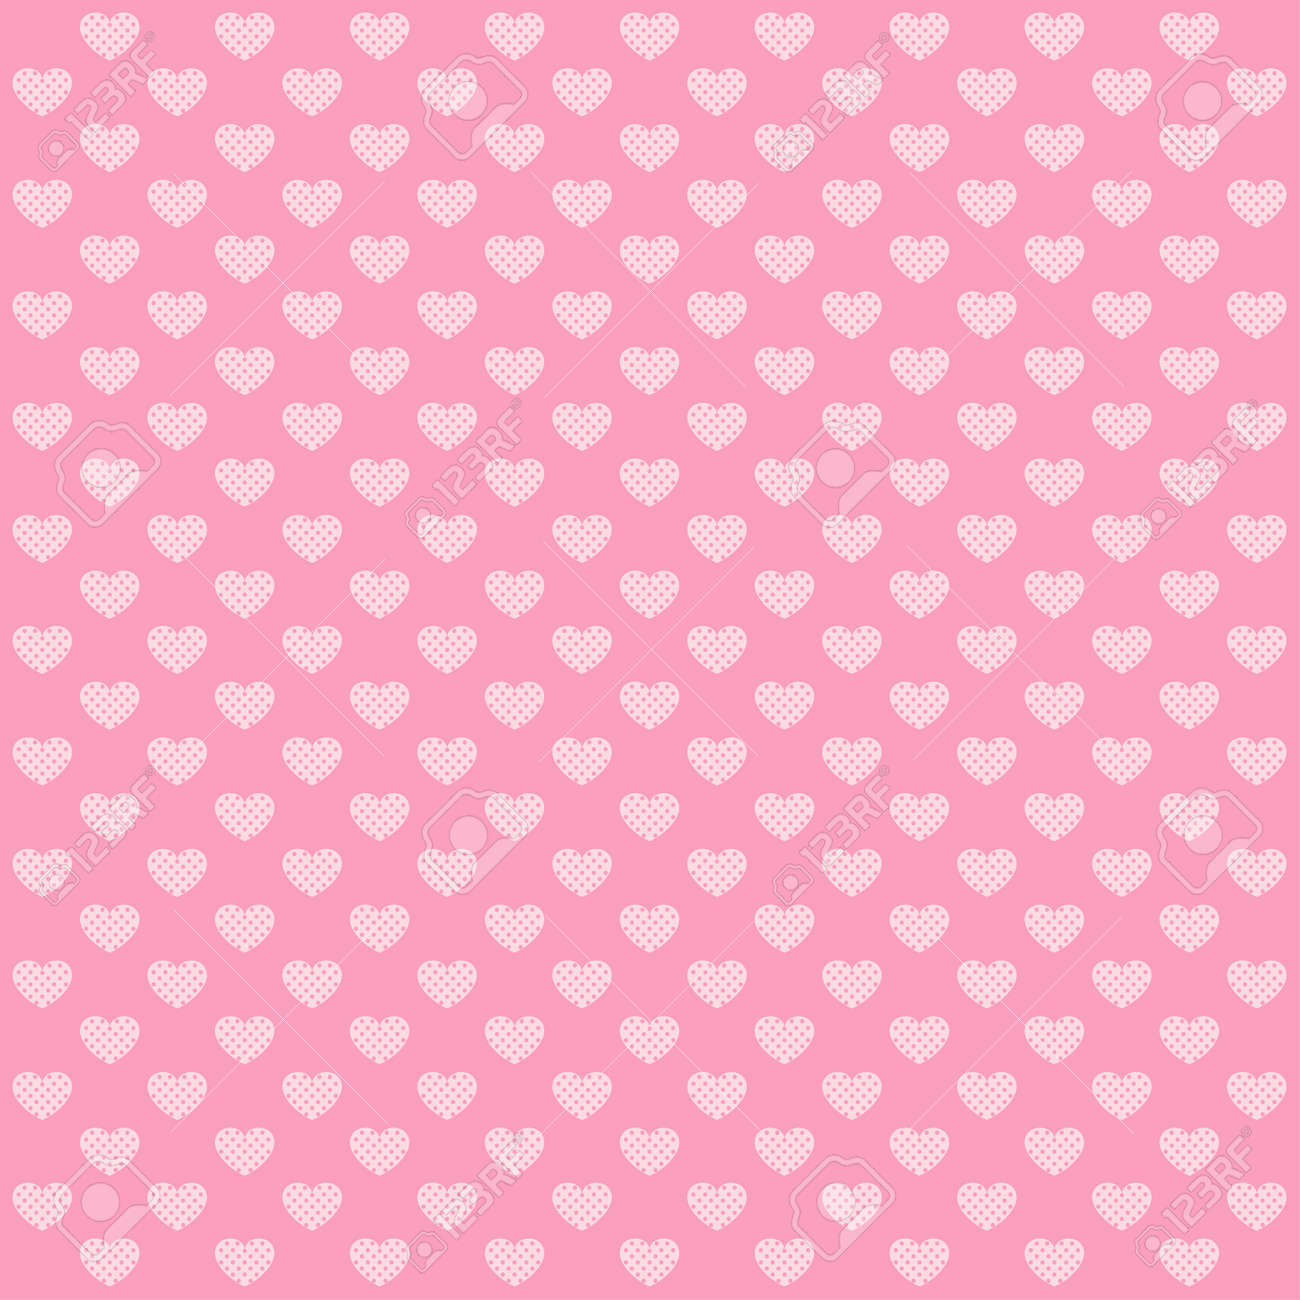 cute hearts pattern pink love background vector image royalty free cliparts vectors and stock illustration image 51151102 cute hearts pattern pink love background vector image